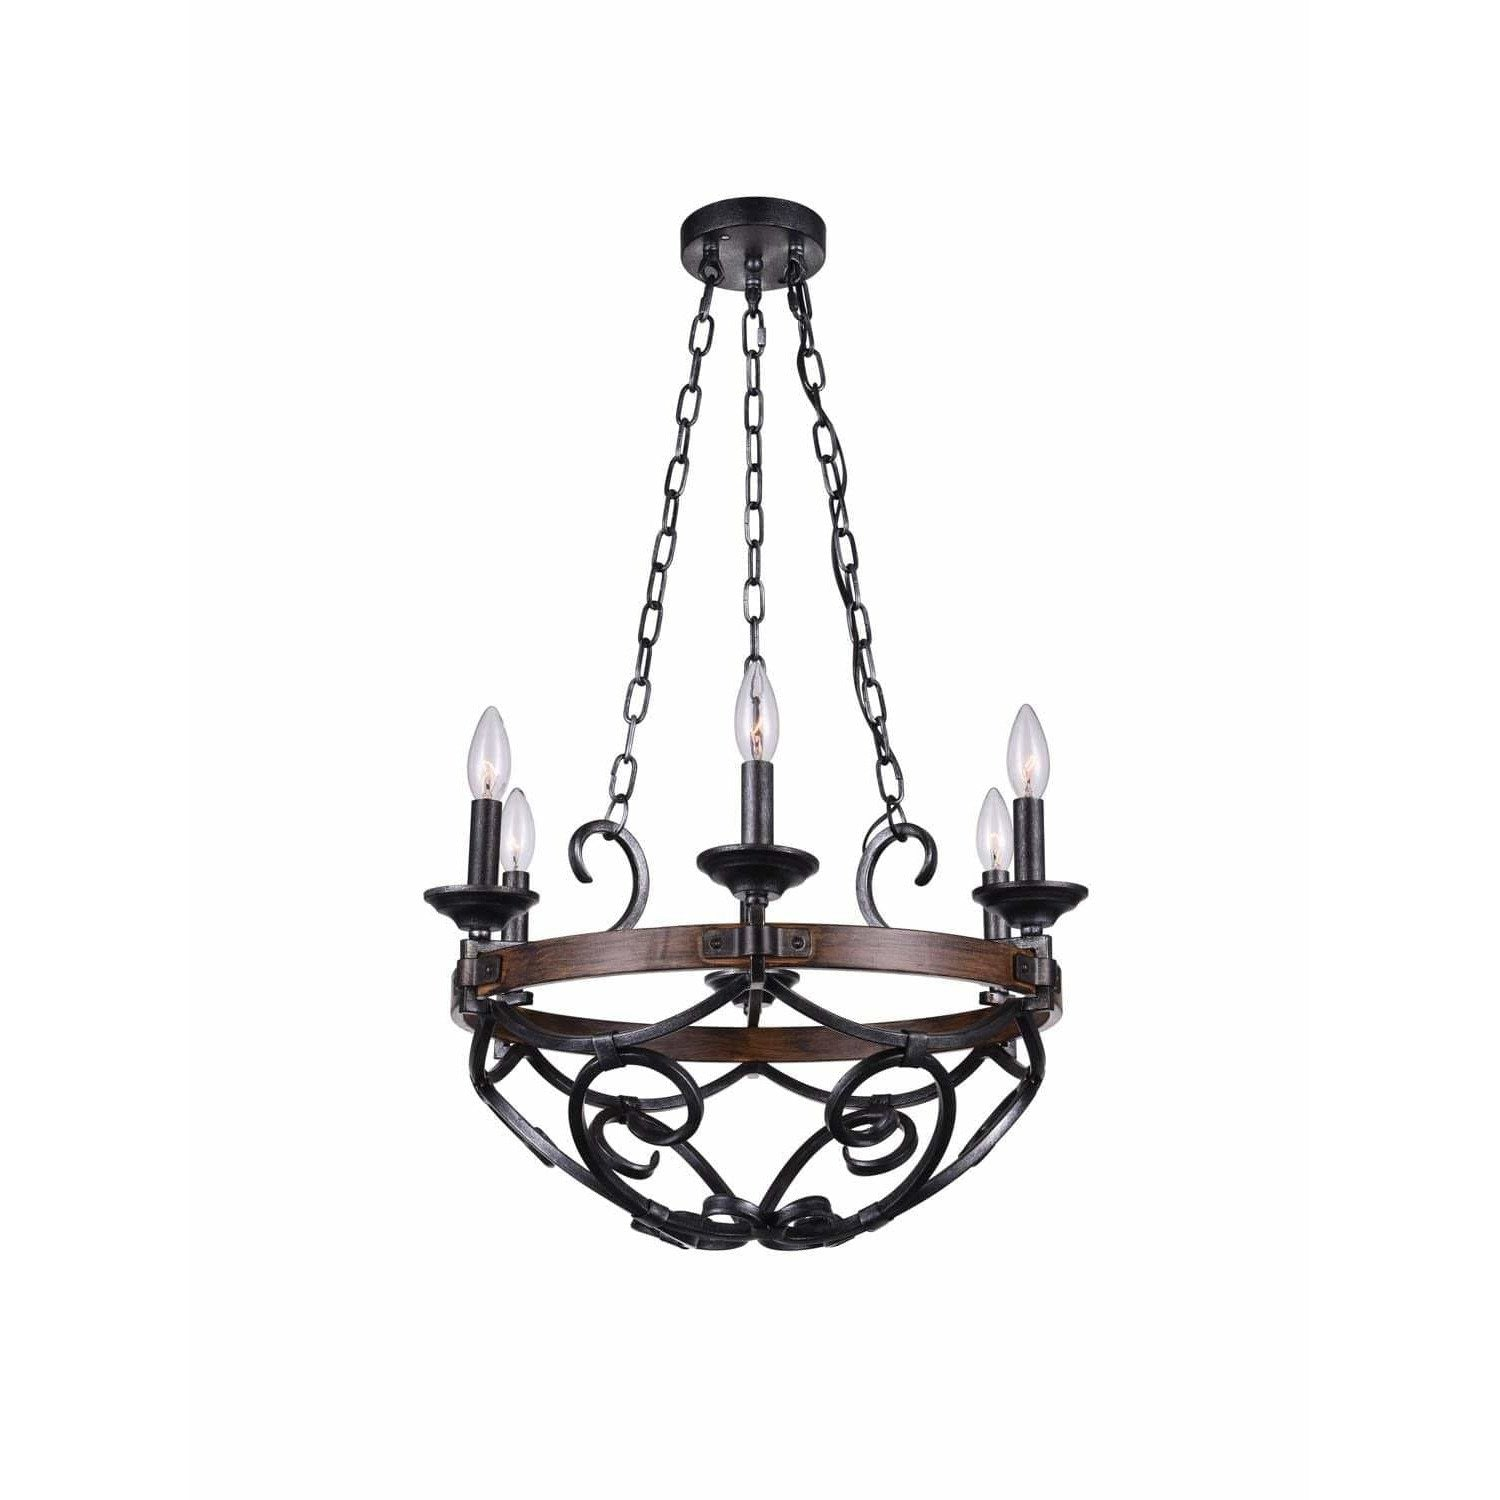 CWI Lighting Chandeliers Gun Metal Morden 6 Light Candle Chandelier with Gun Metal finish by CWI Lighting 9940P21-6-243